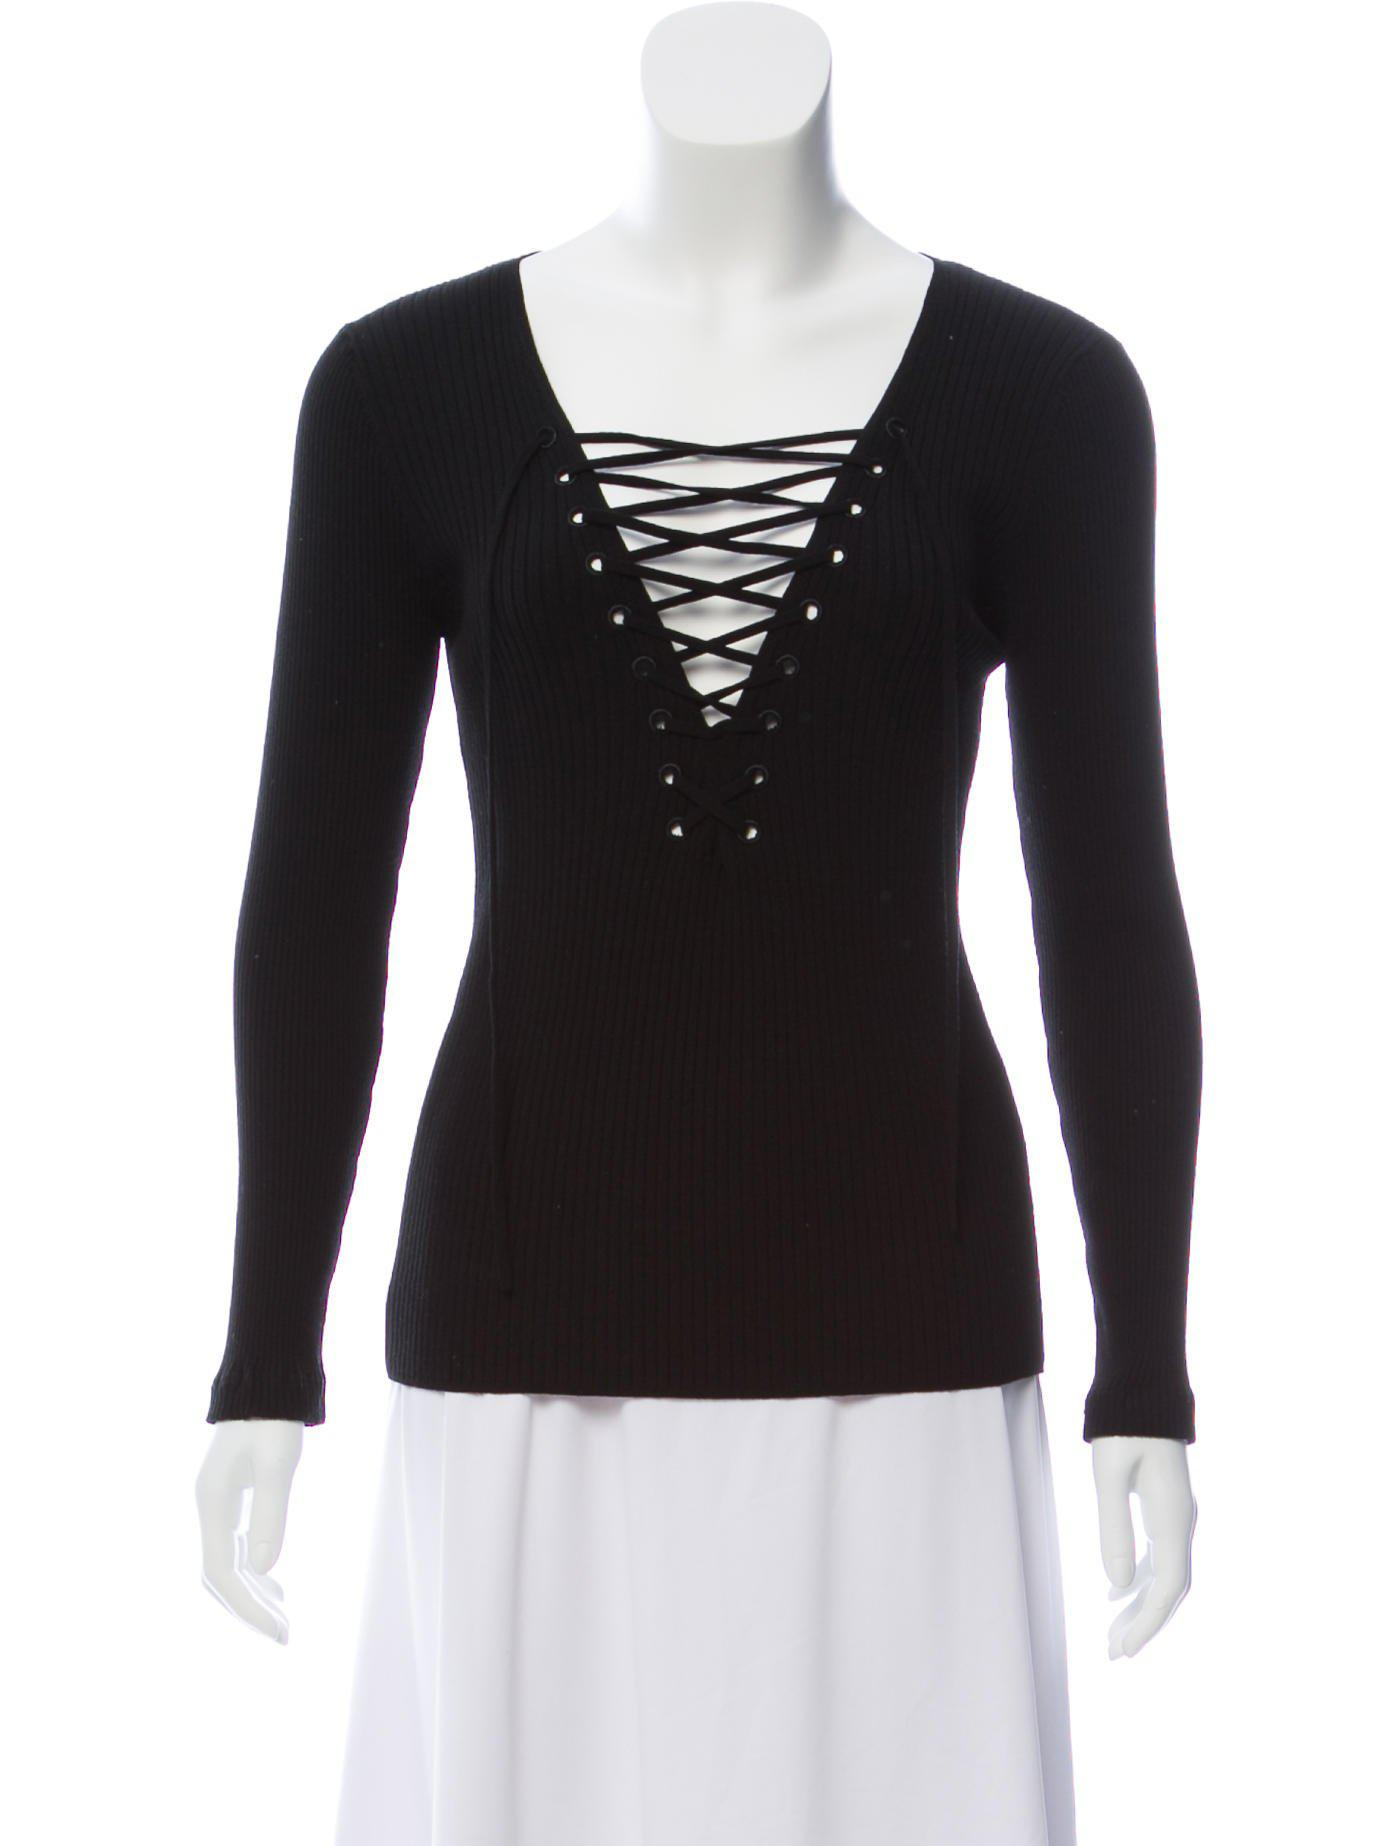 Buy Cheap Low Cost Discount Hot Sale A.L.C. Knit Long Sleeve Top mGxPm